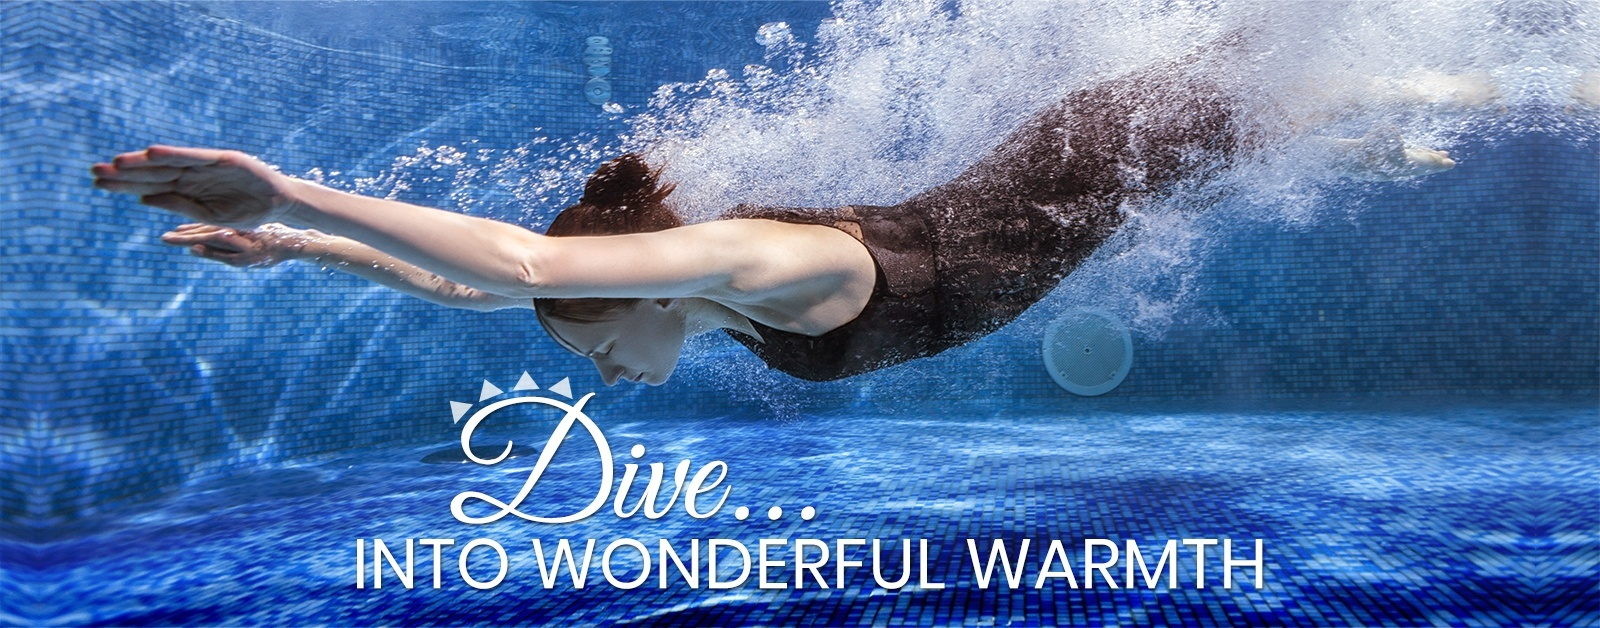 Dive into wonderful warmth